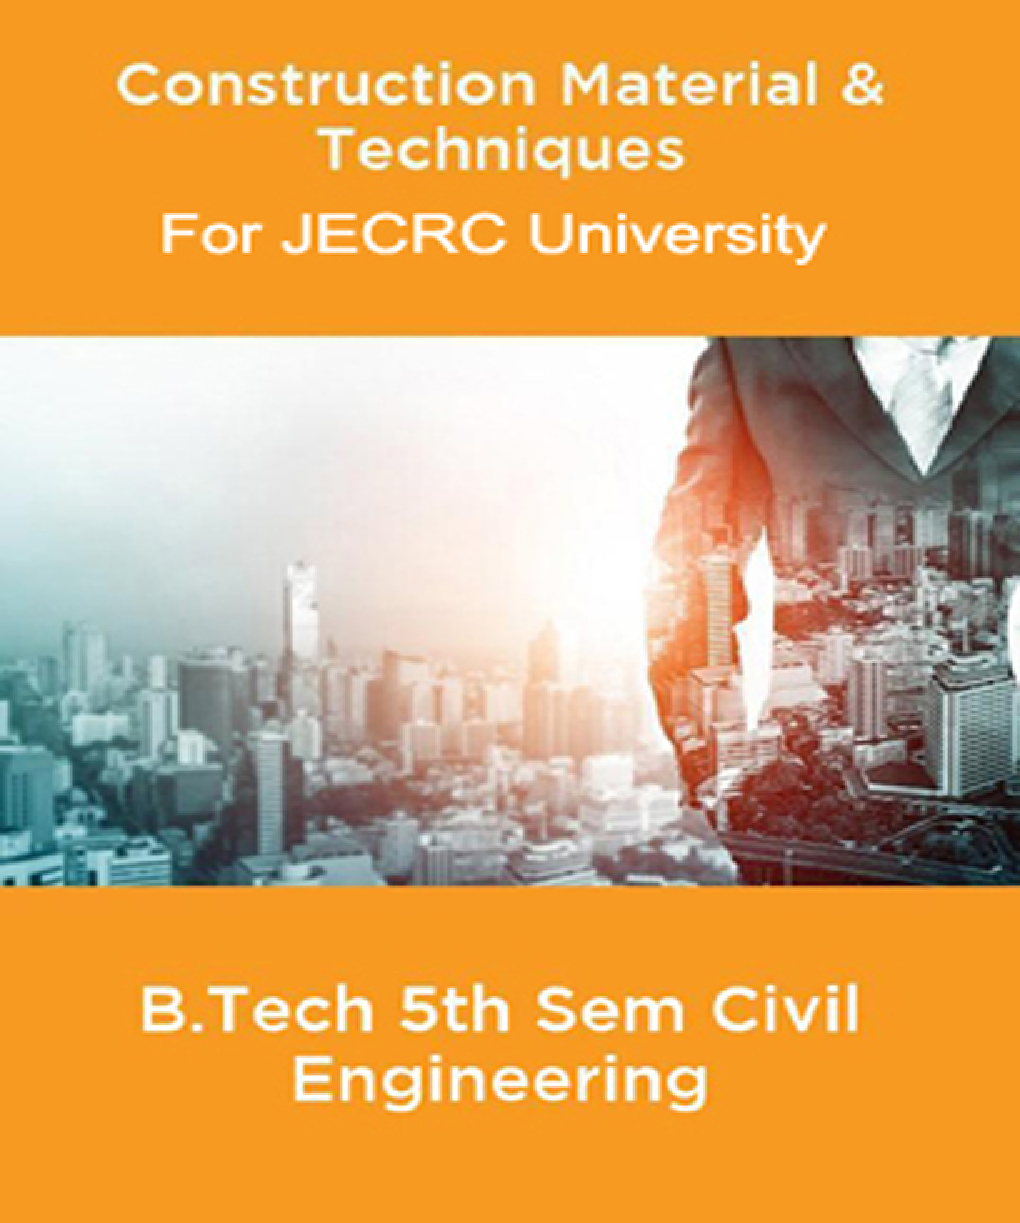 Construction Material & Techniques B.Tech 5th Sem Civil Engineering For JECRC University - Page 1